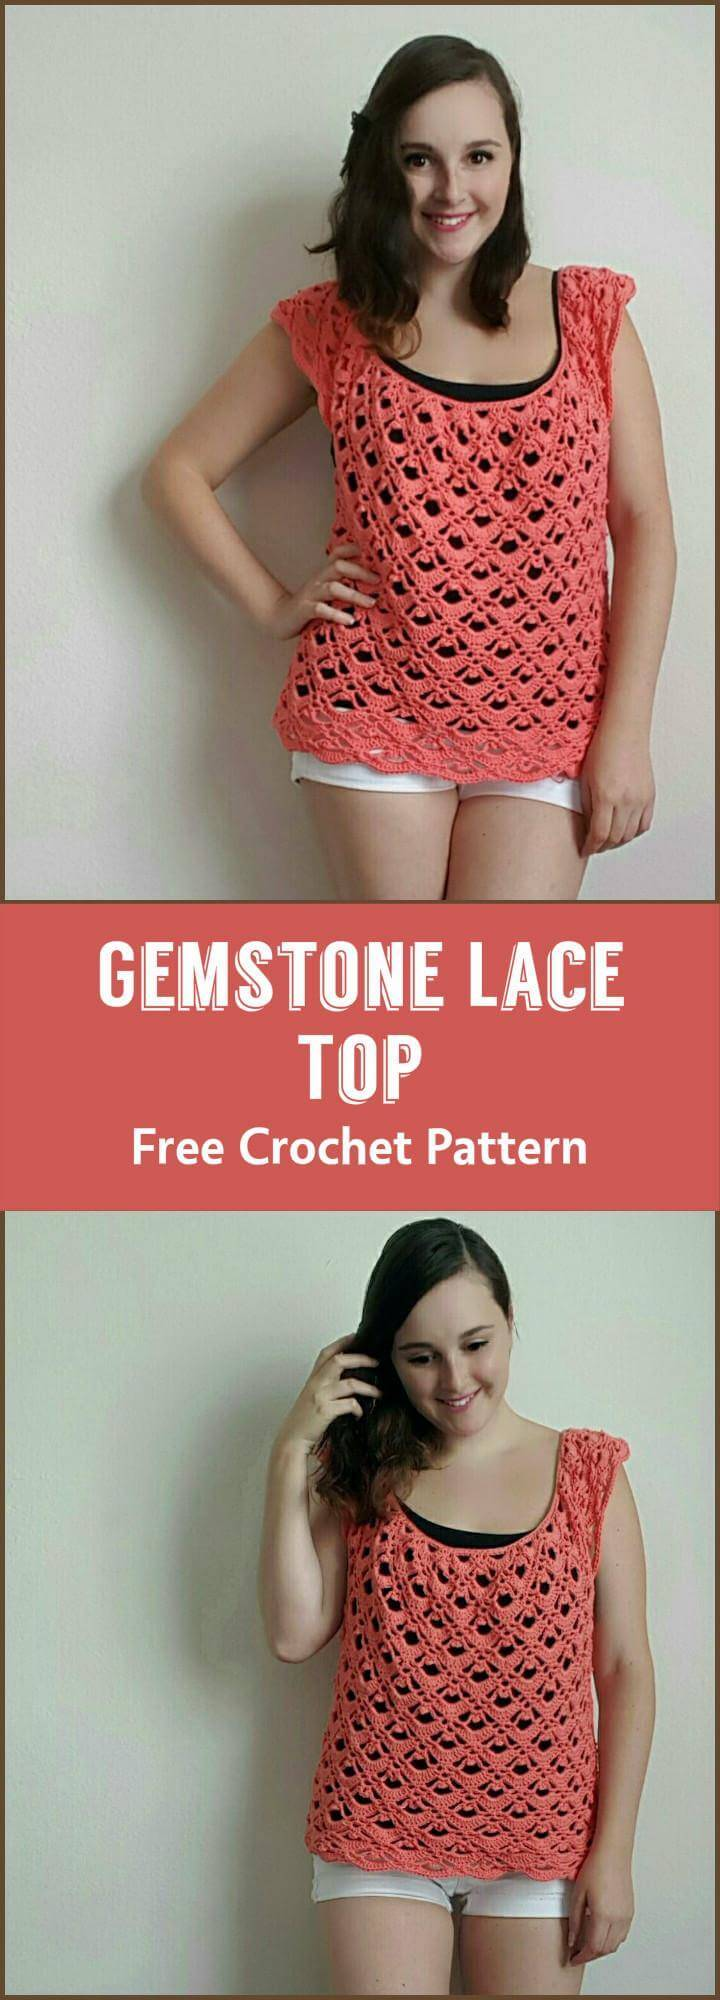 Gemstone Lace Top Free Crochet Pattern